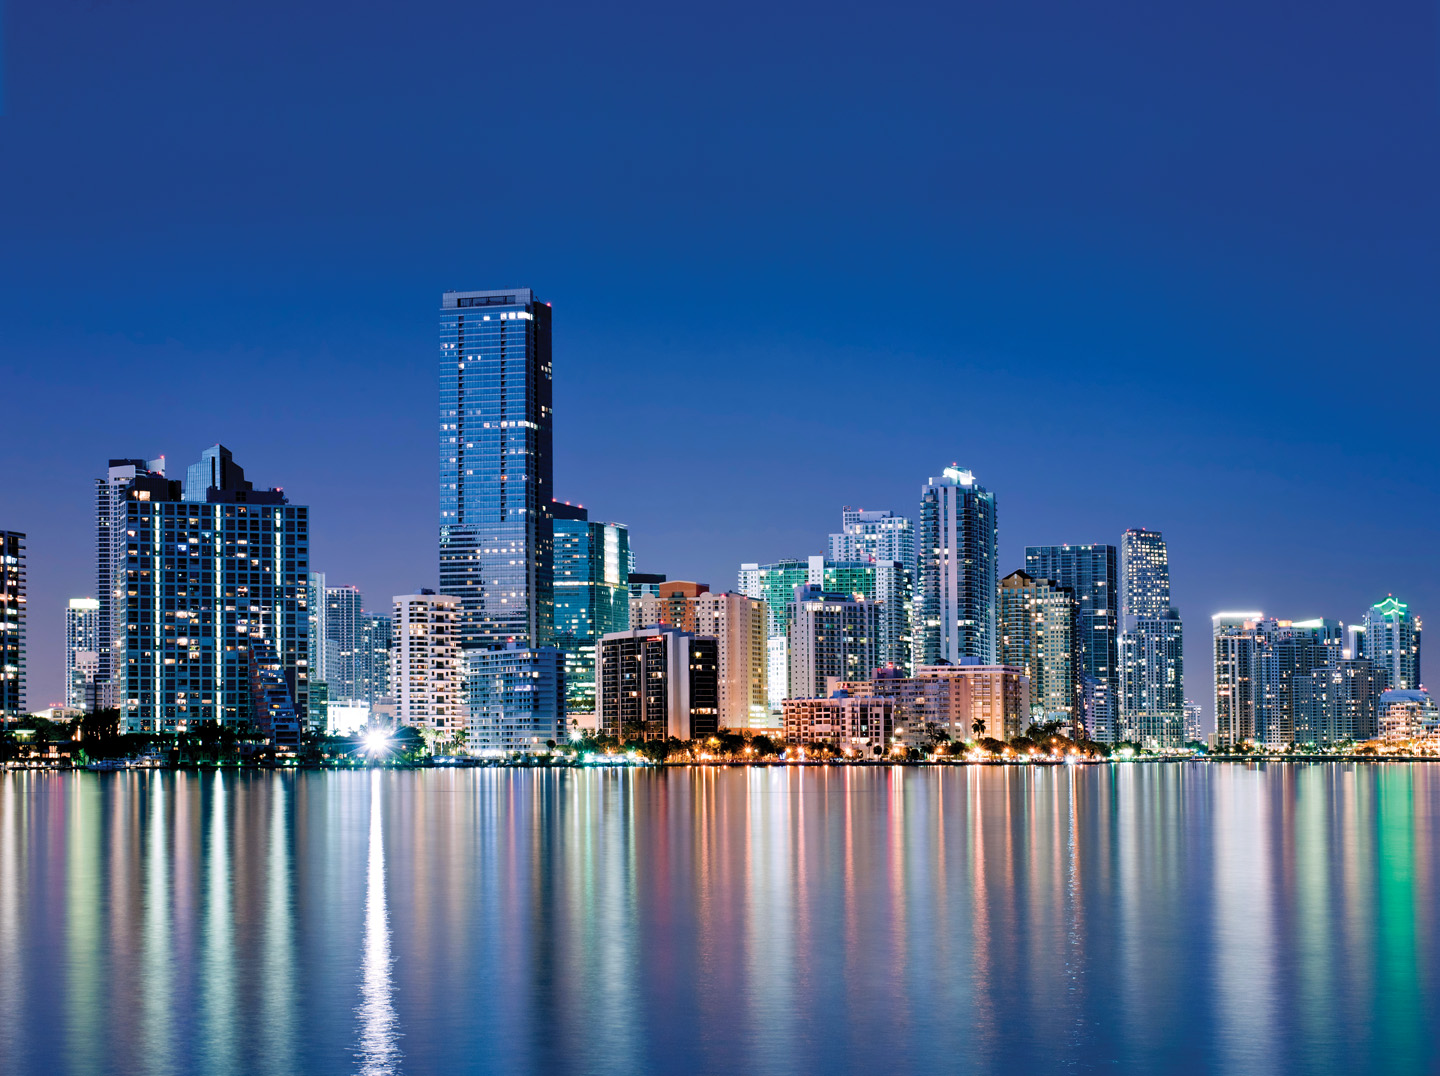 Enthusiastic Miami Amorous Feelings-Miami Stunning Views